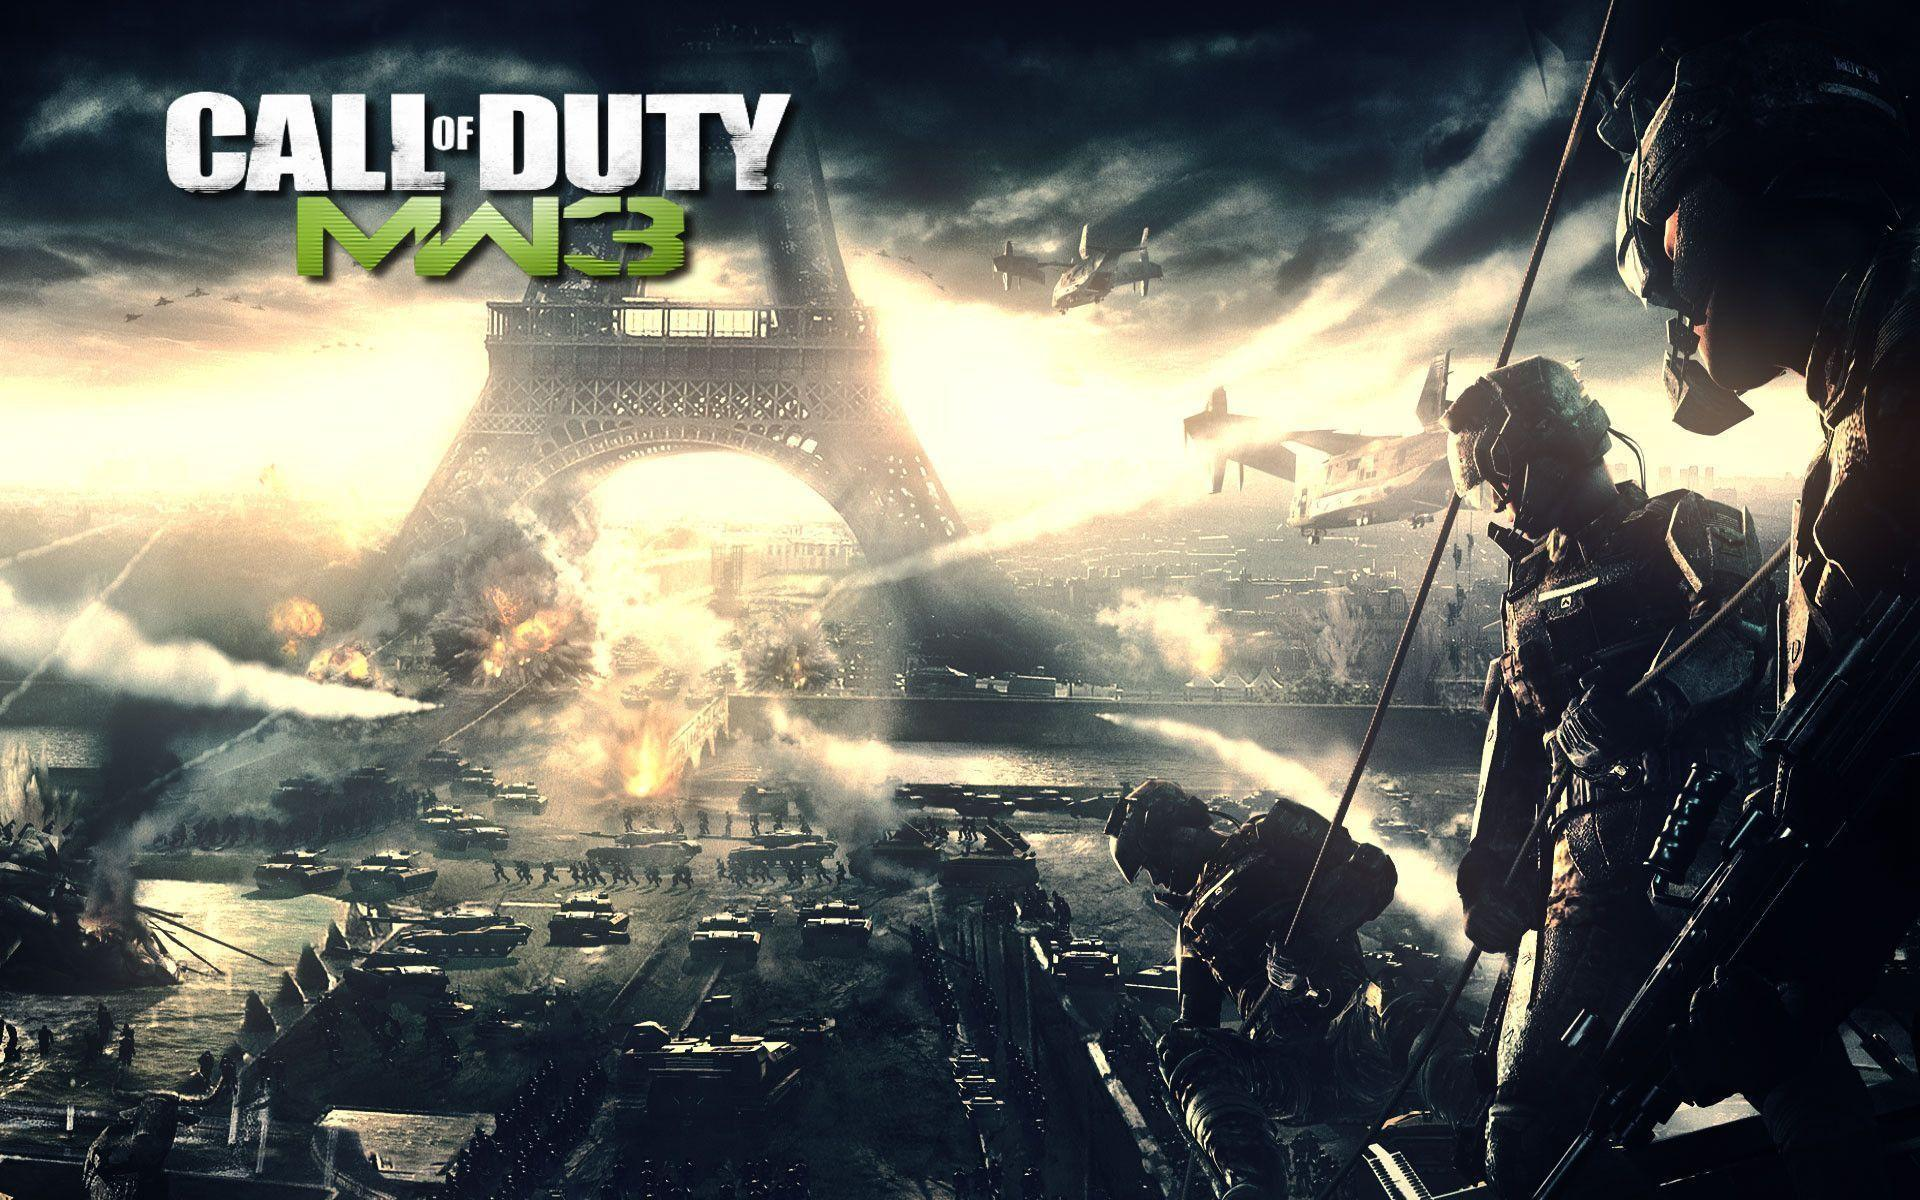 Call Of Duty Modern Warfare 3 Wallpapers - Full HD wallpaper search